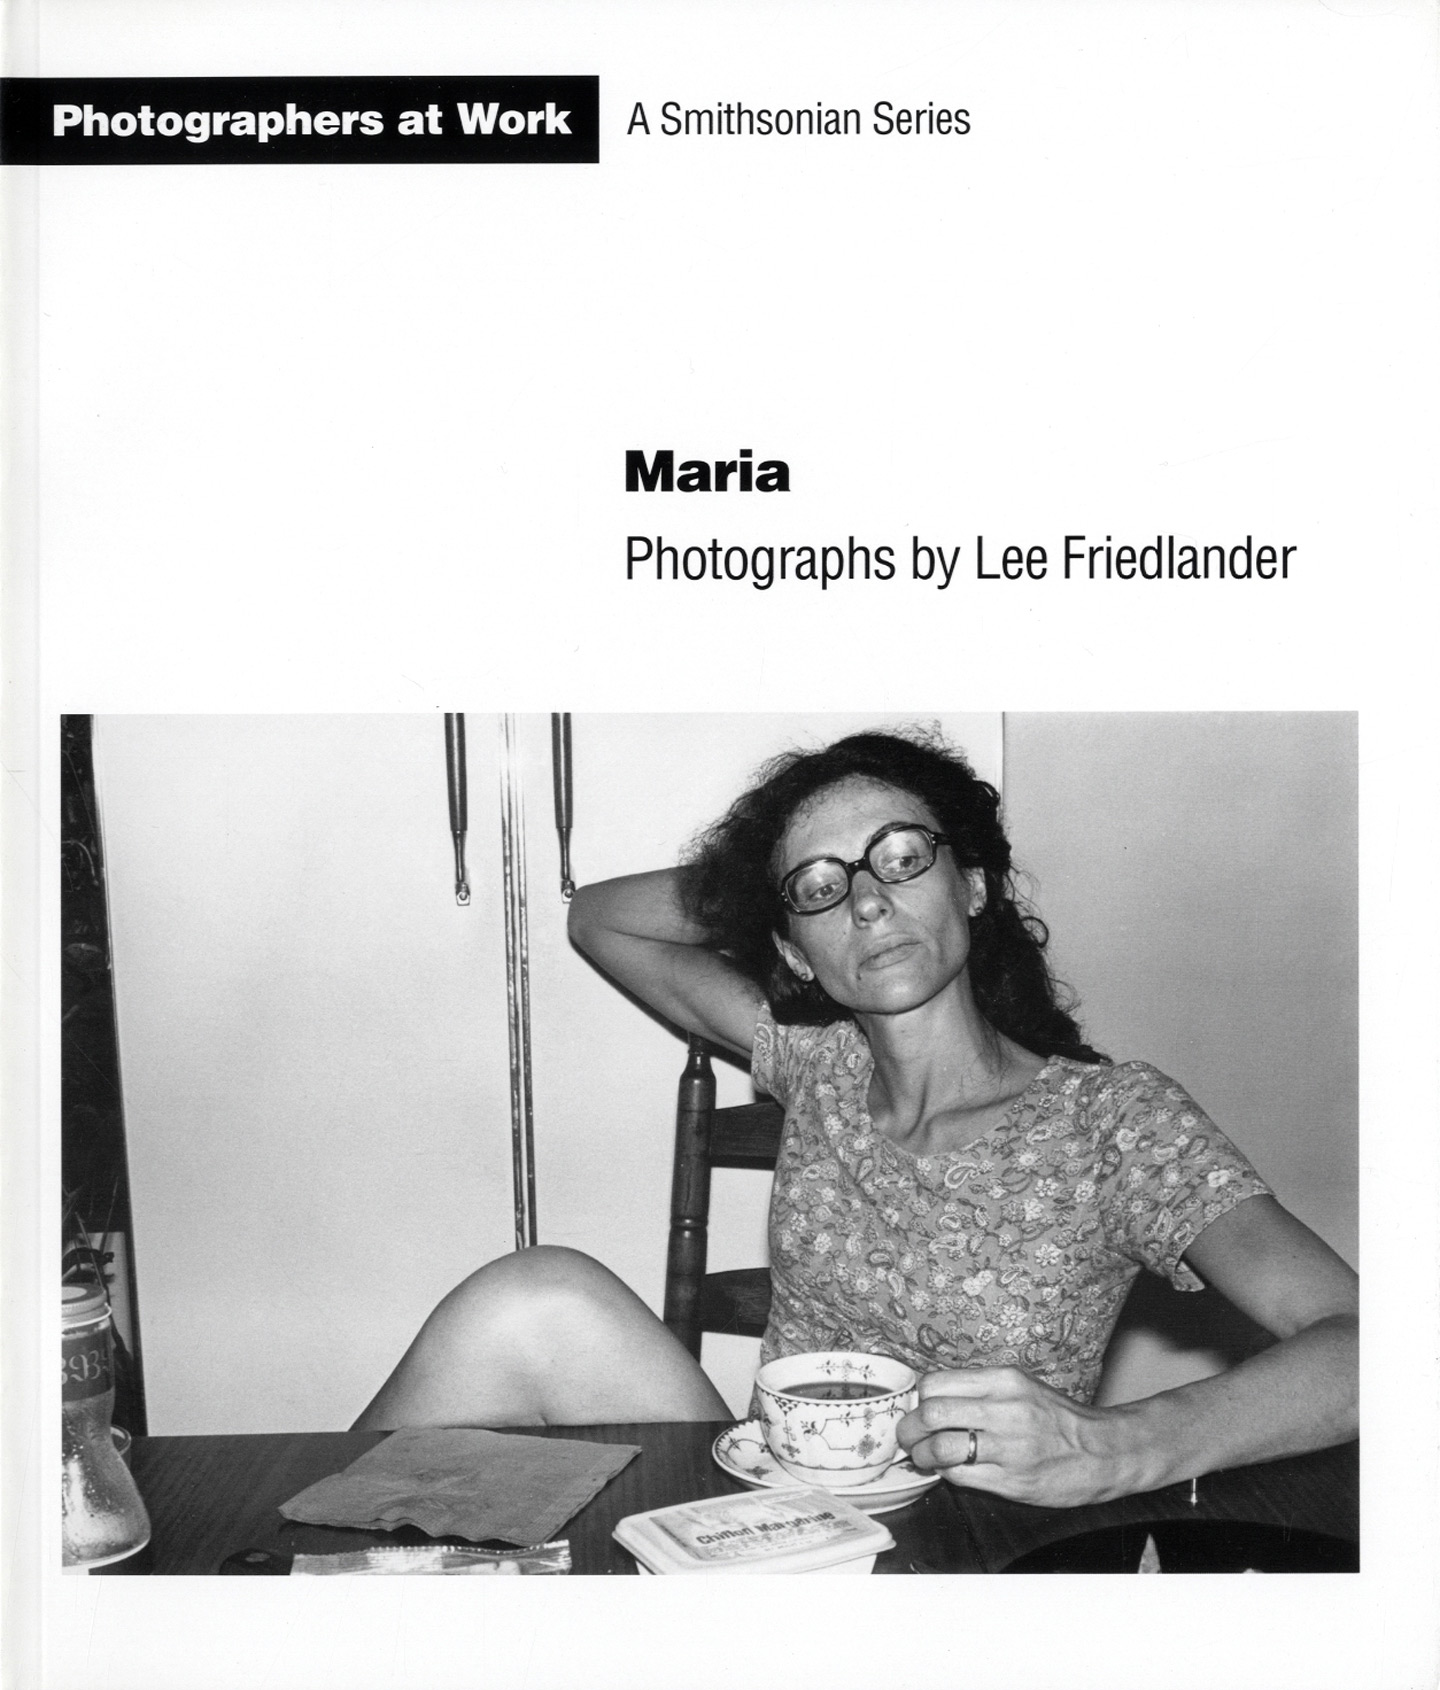 Maria: Photographs by Lee Friedlander (A Smithsonian Series) [SIGNED]